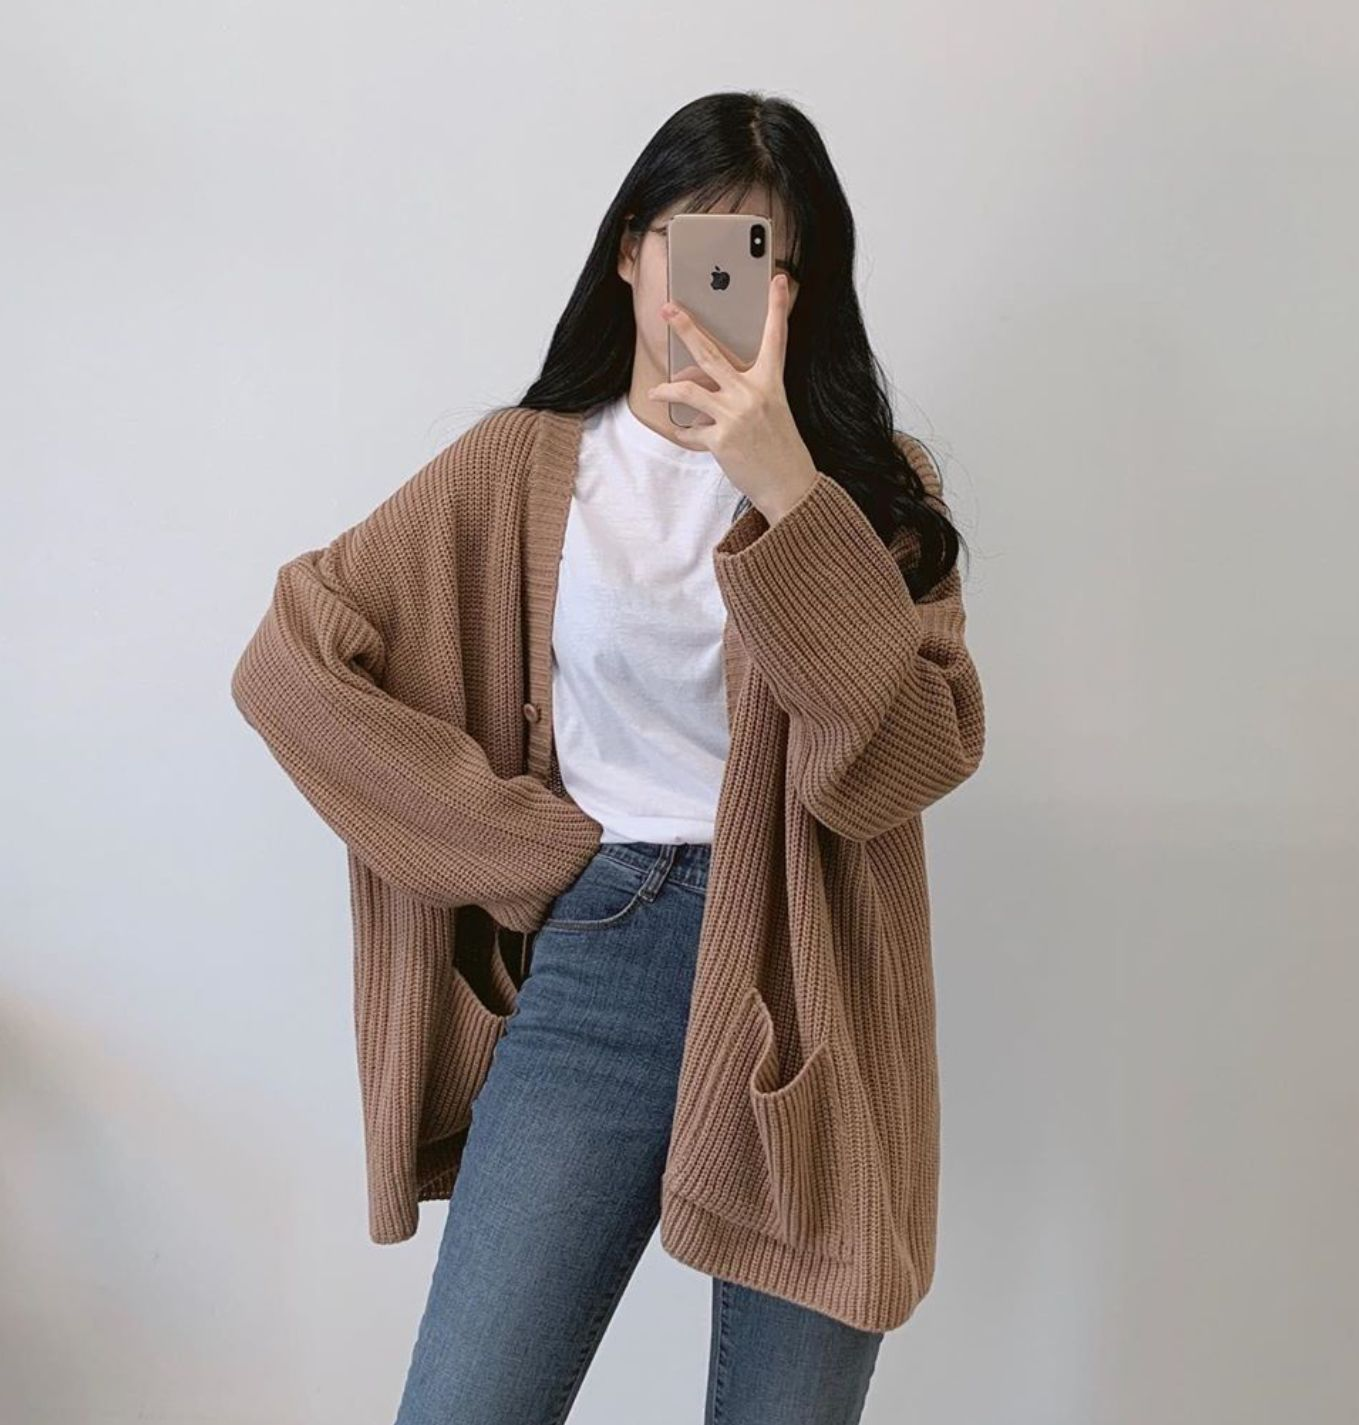 R O S I E In 2020 Korean Girl Fashion Fashion Inspo Outfits Korean Outfits